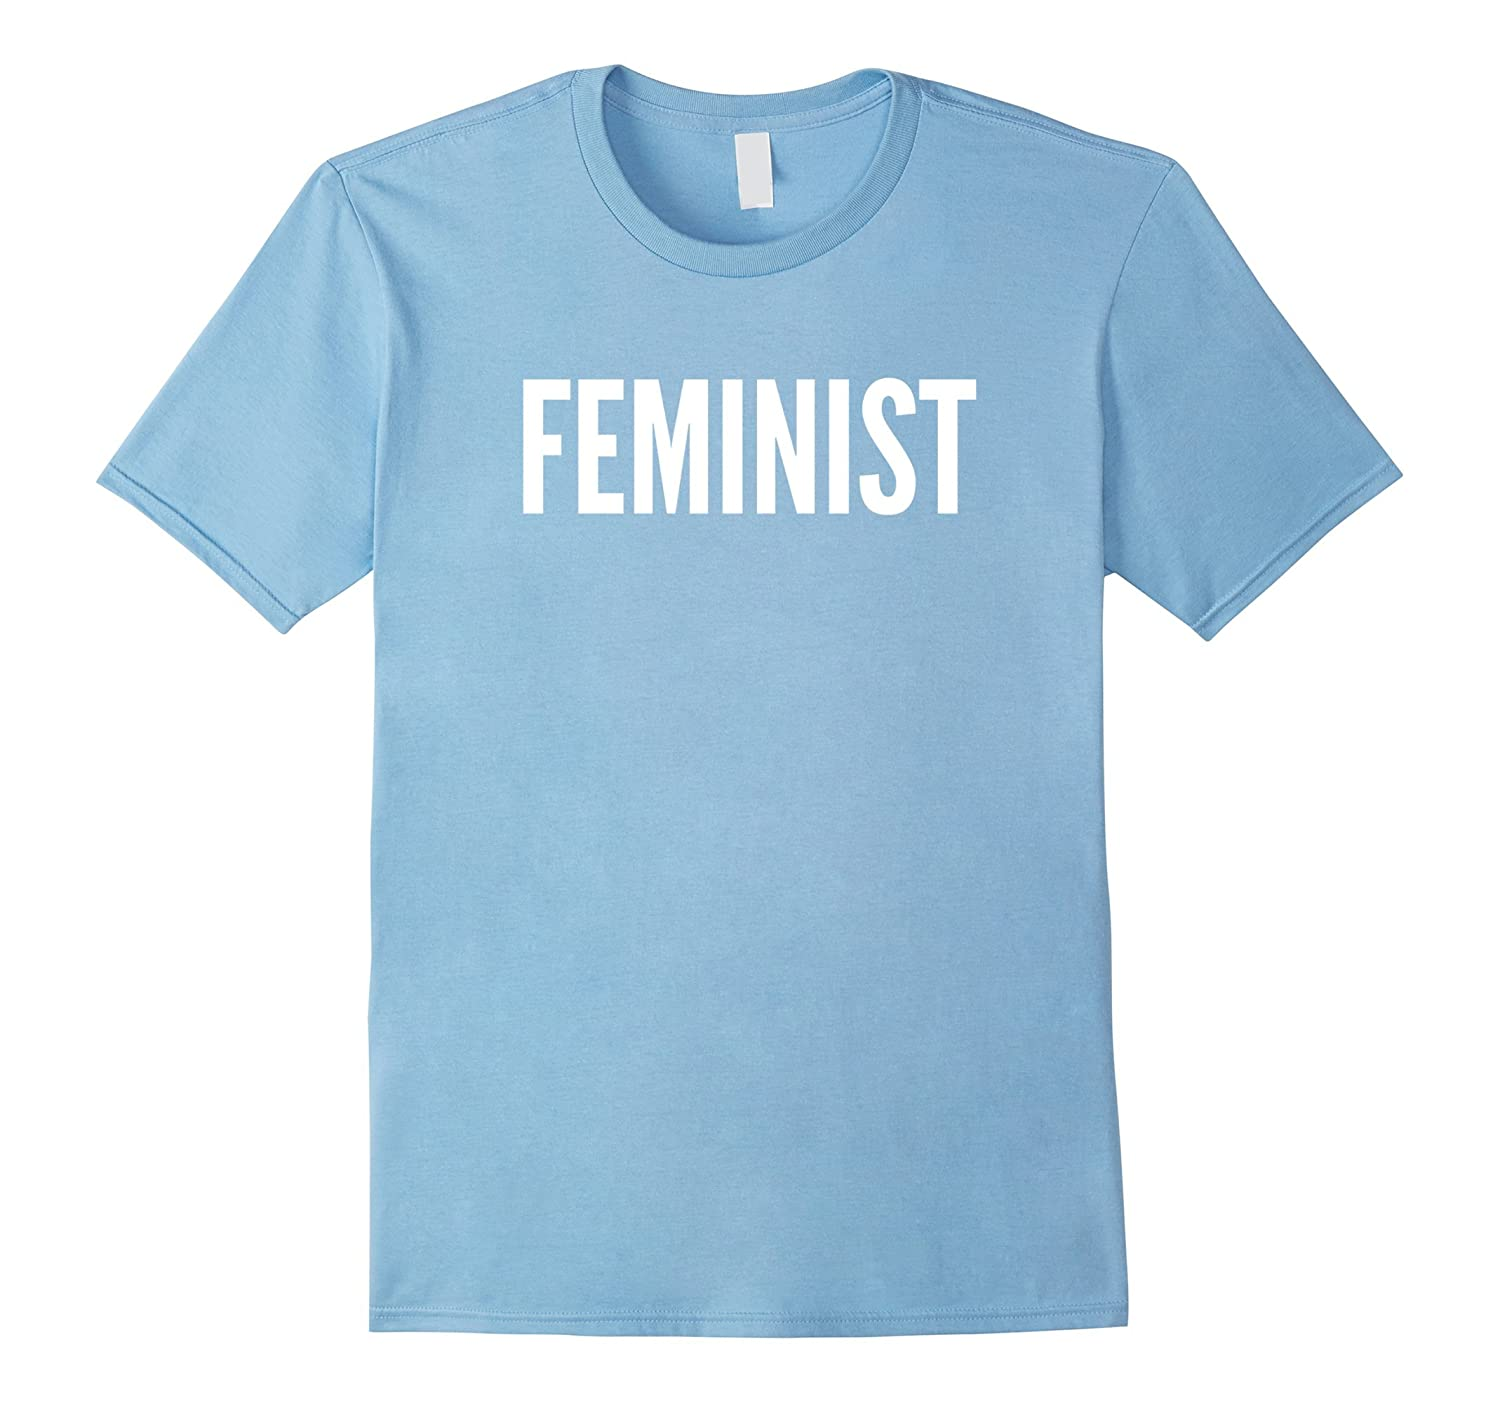 Feminist Shirt Tee Womens Equality Day Power Gift Tshirt-CL